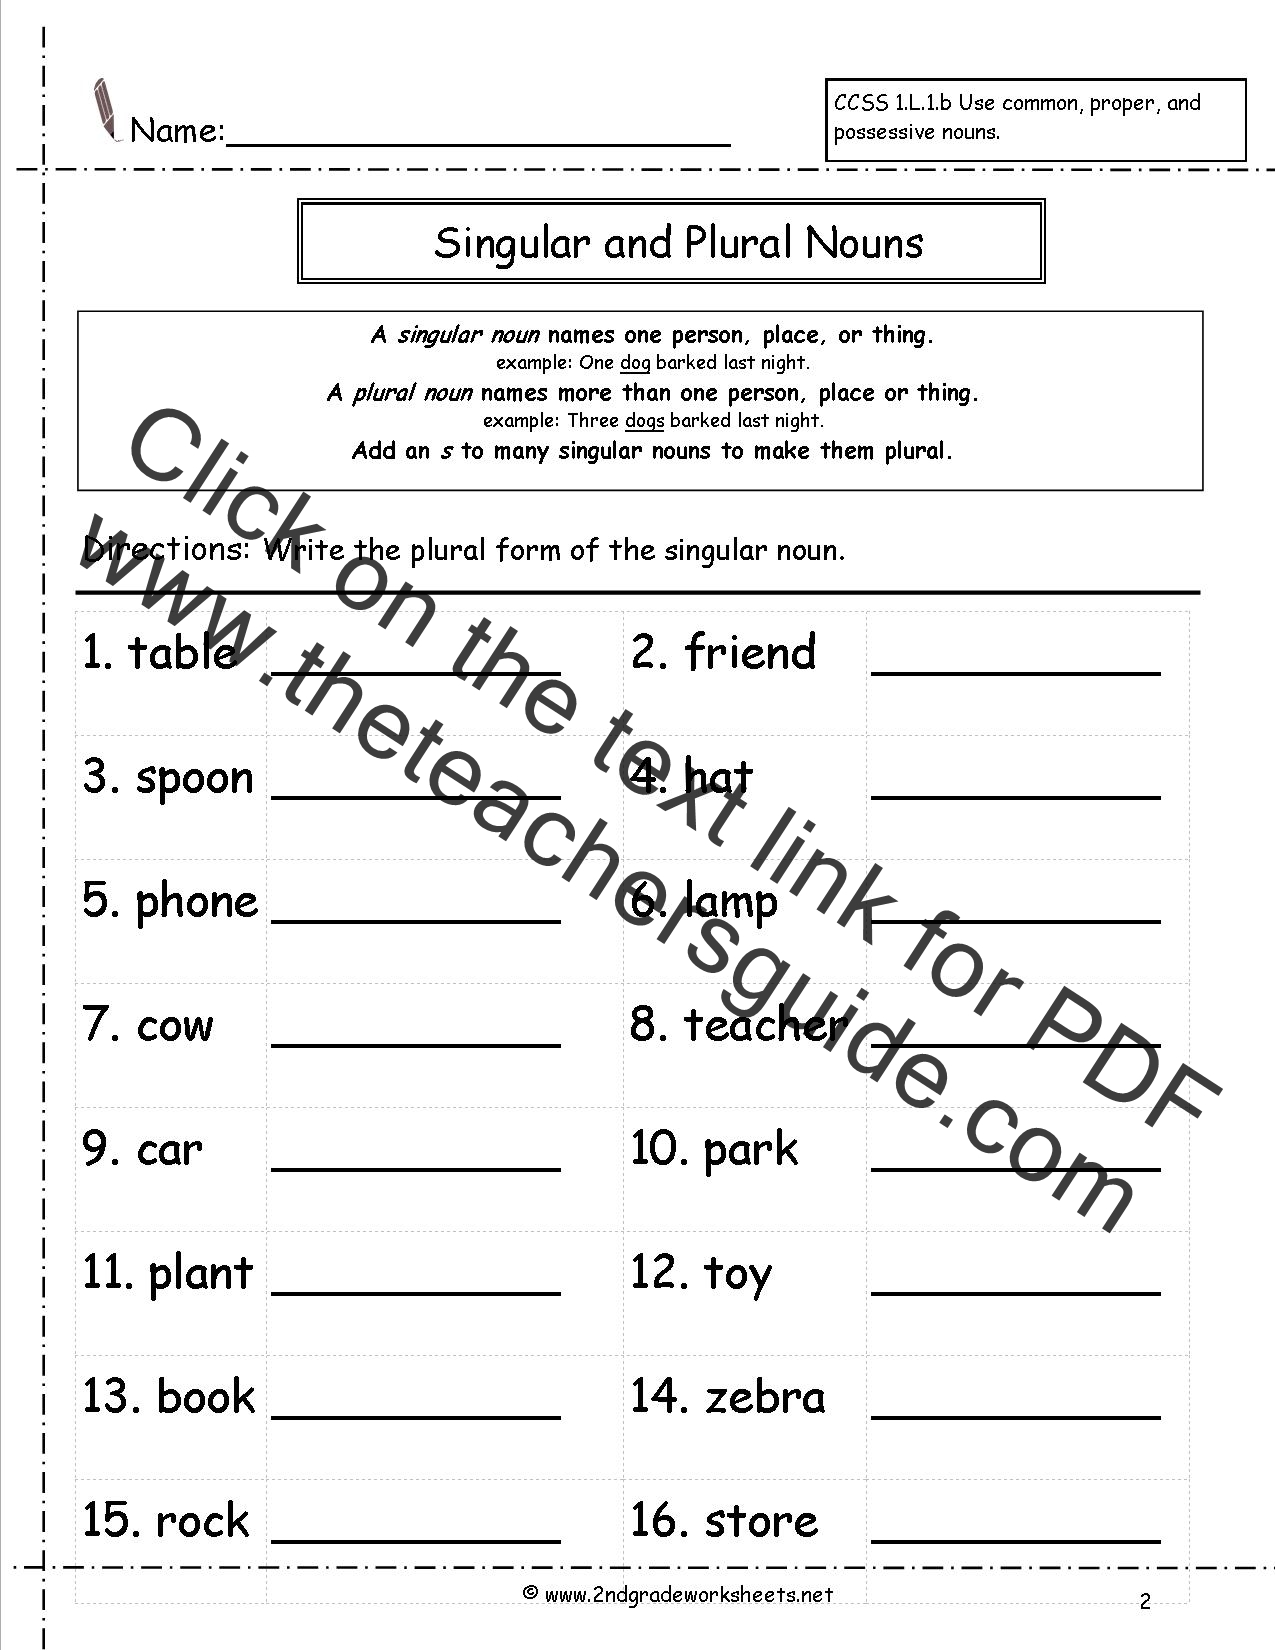 Worksheets Singular And Plural Nouns Worksheets singular and plural nouns worksheets worksheet